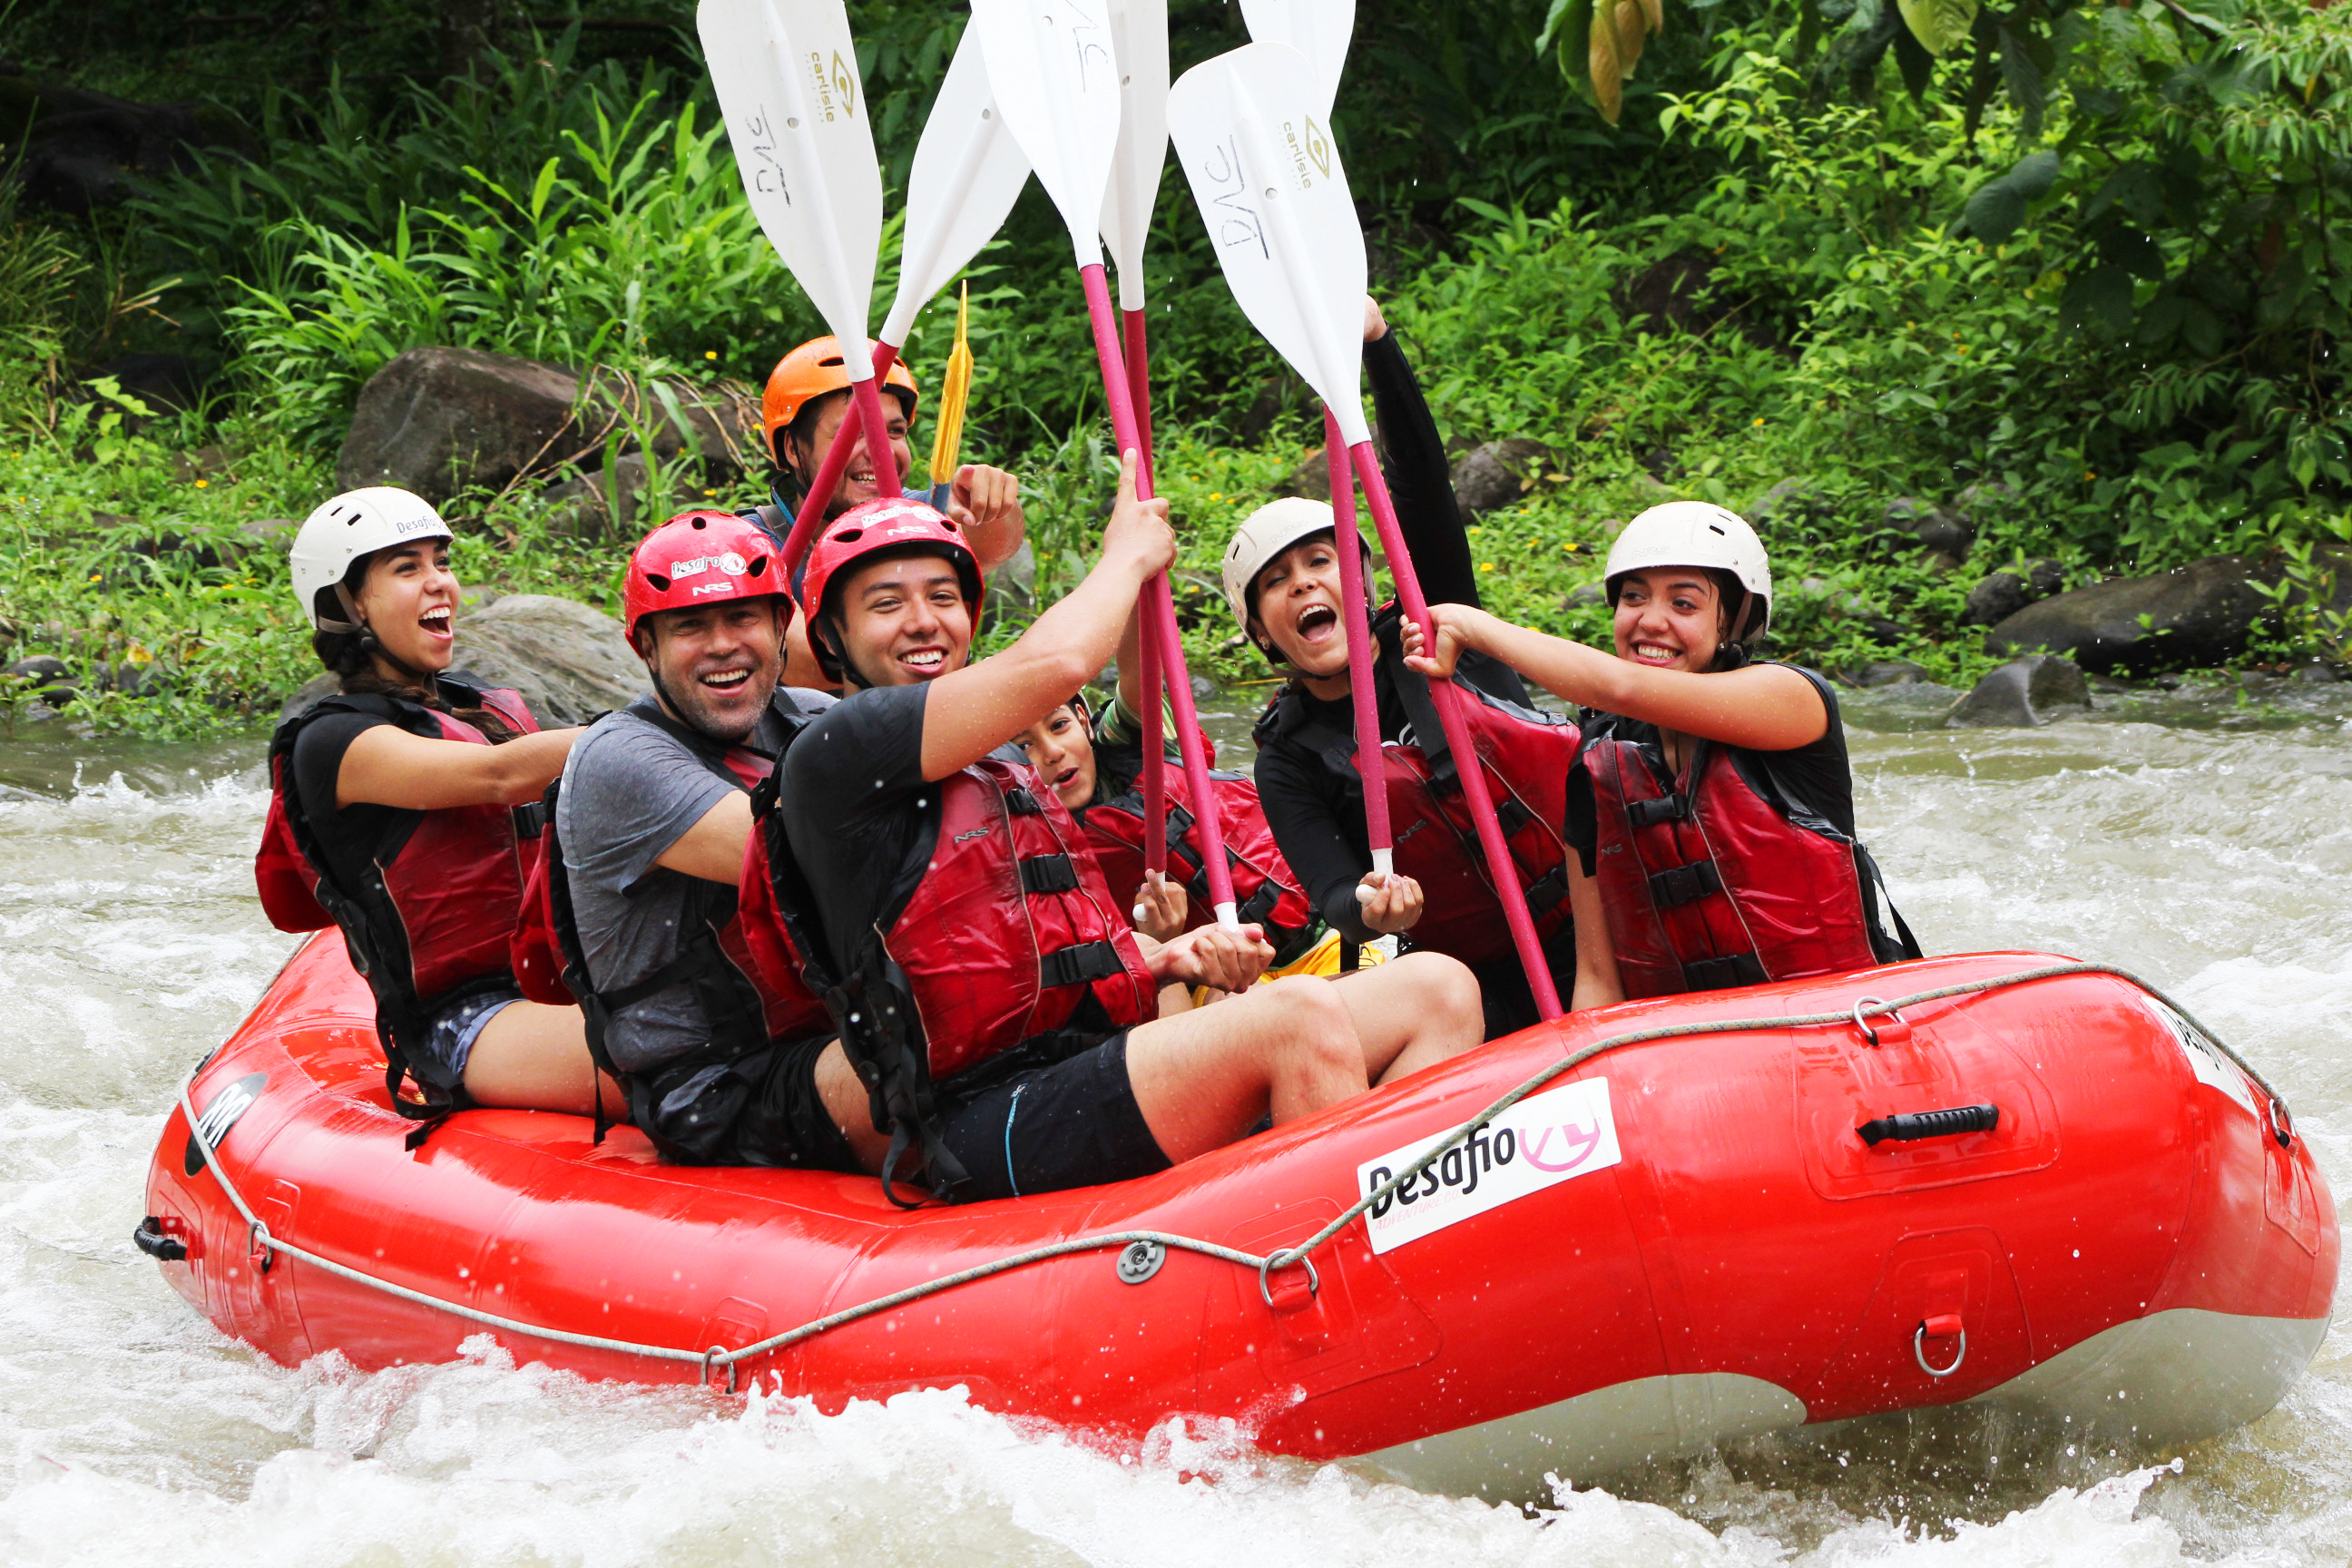 Challenge yourself as you paddle down 10 kilometers of exciting rapids with names